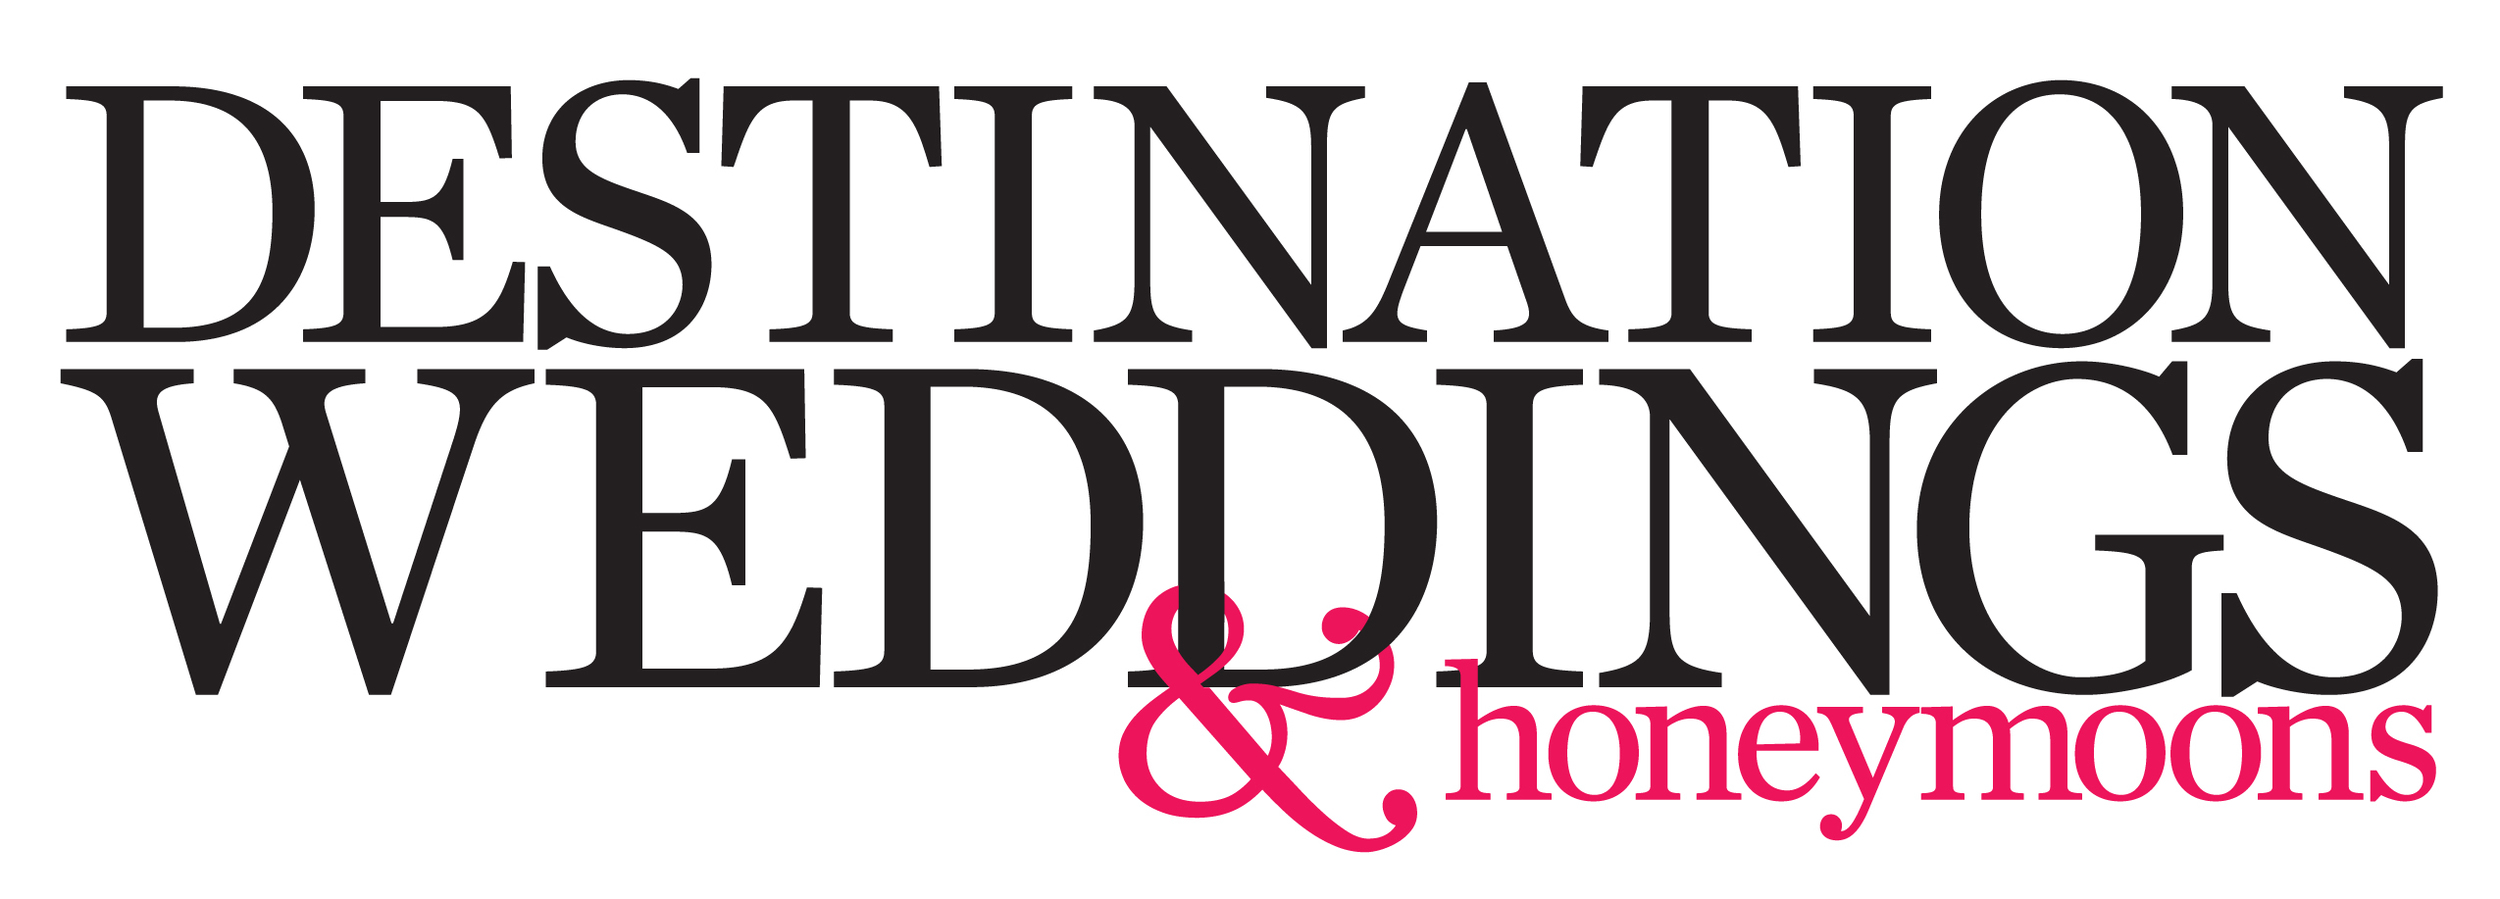 Destination-Weddings-Honeymoons-logo.jpg